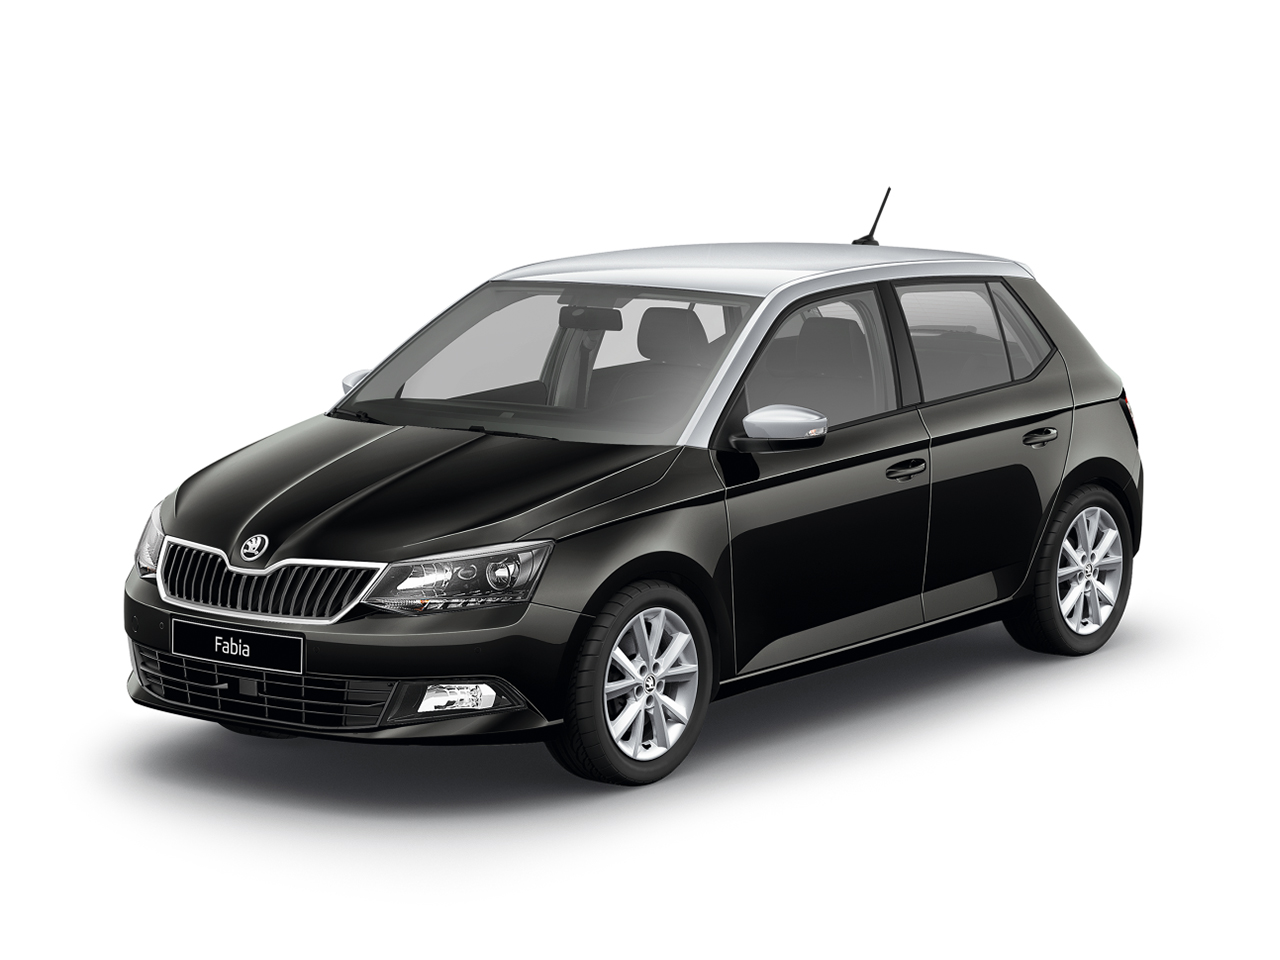 2017 skoda fabia prices in saudi arabia gulf specs reviews for riyadh jeddah dammam and. Black Bedroom Furniture Sets. Home Design Ideas